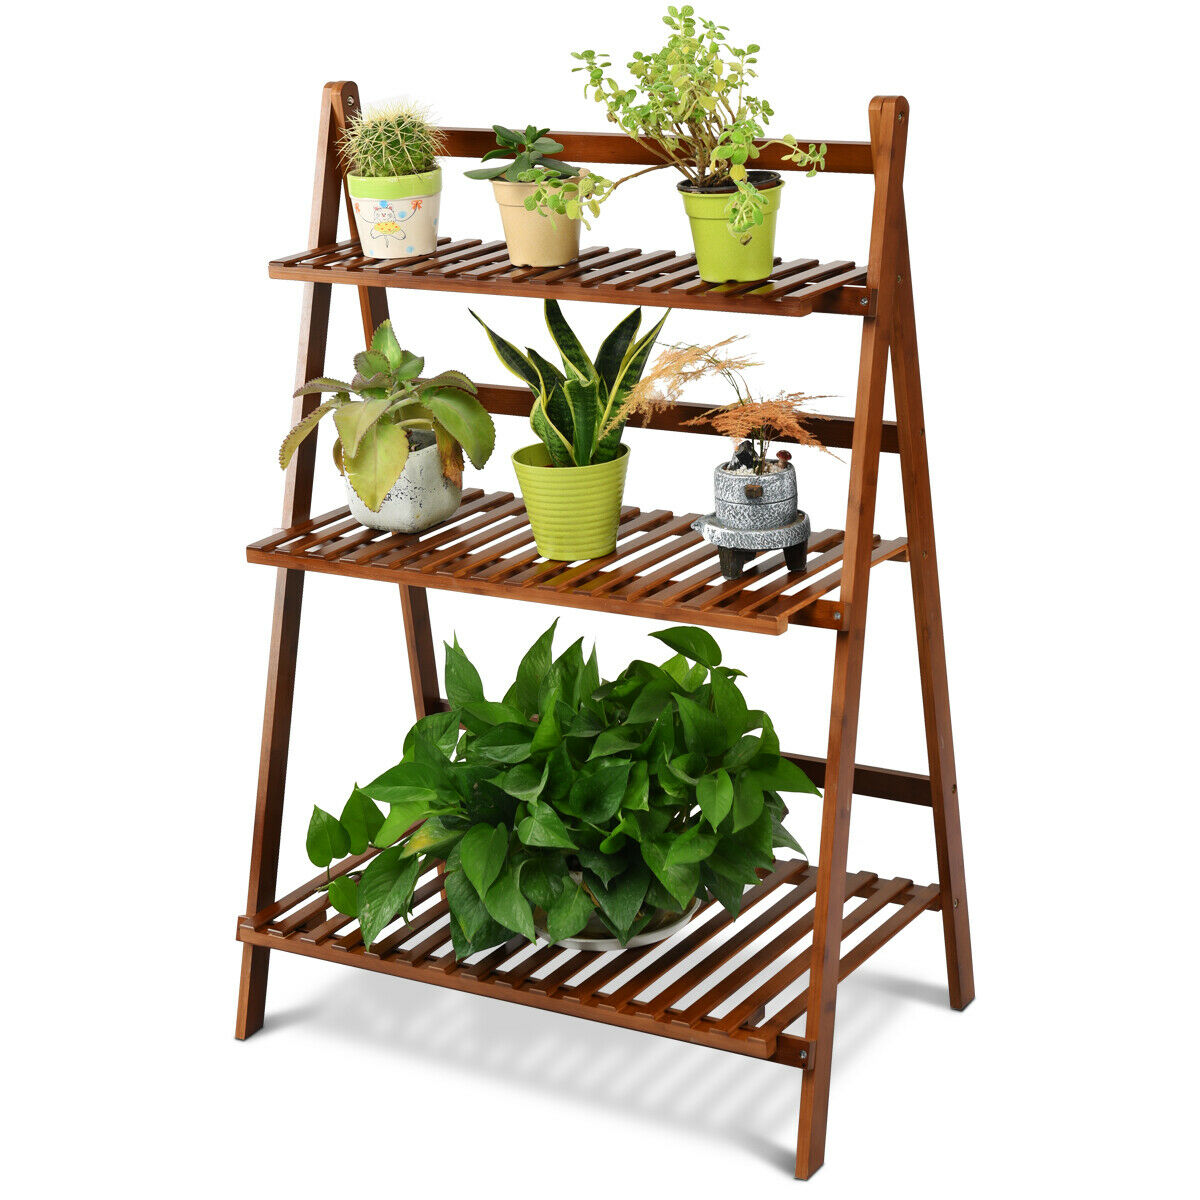 3 Tier Folding Shelf Stand Bamboo Flower Pot Display Rack Bookcase Organizer Walmart Canada